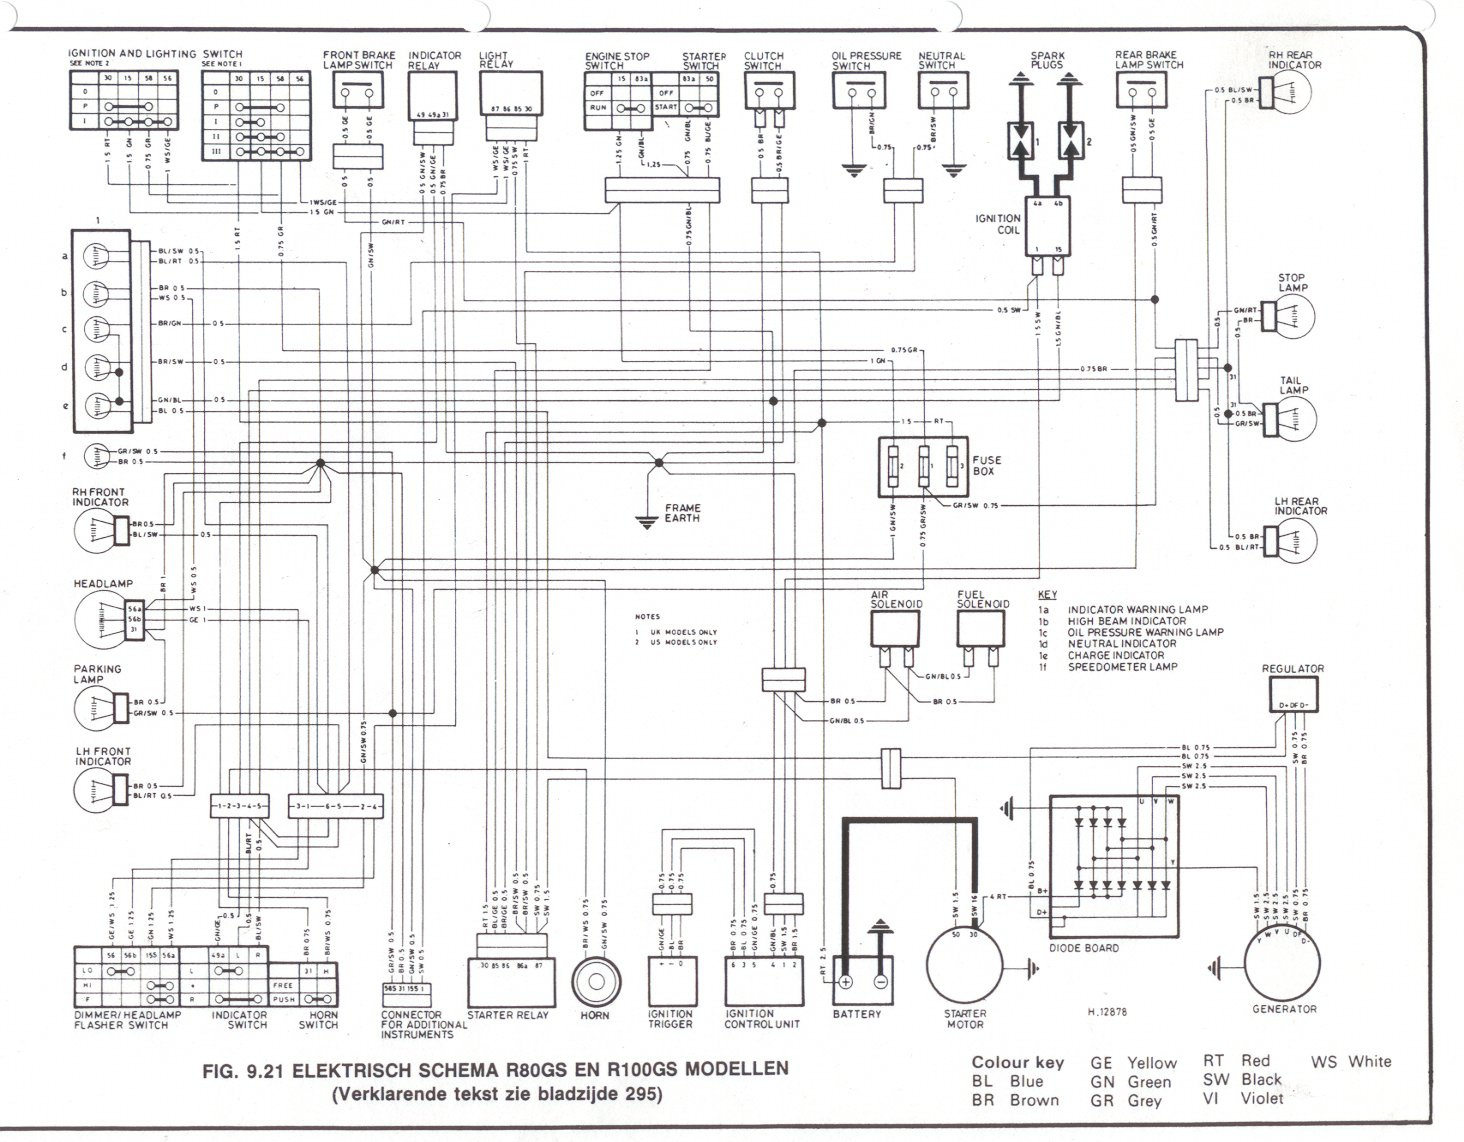 Camshaft Sensor Wiring Diagram on o2 sensor wiring diagram free schematic